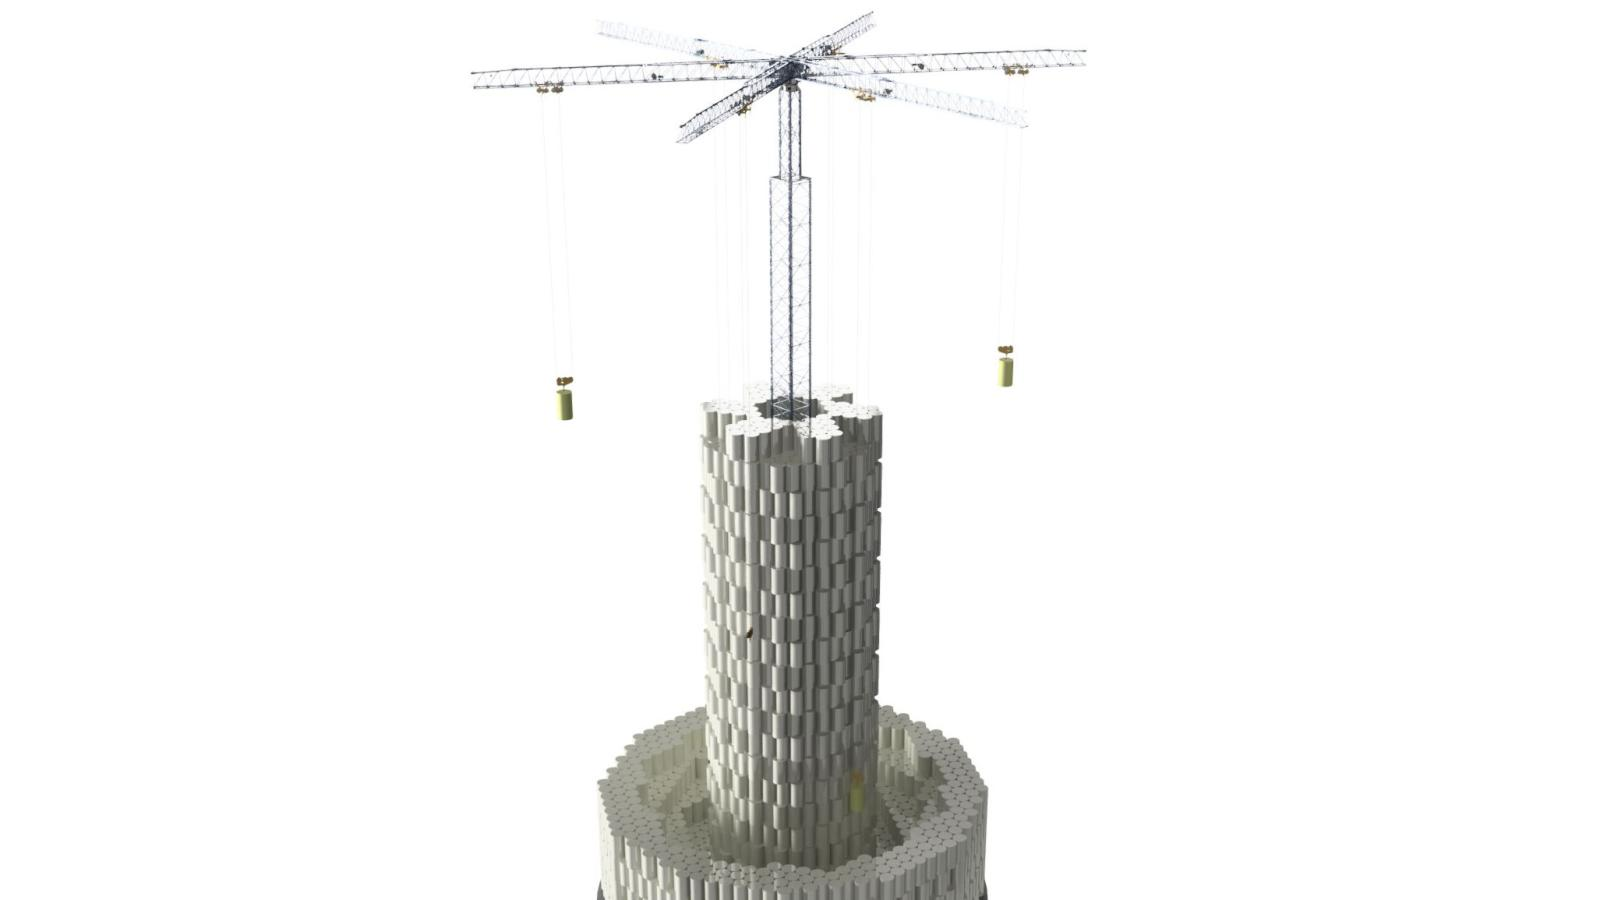 Swiss startup Energy Vault is stacking concrete blocks to